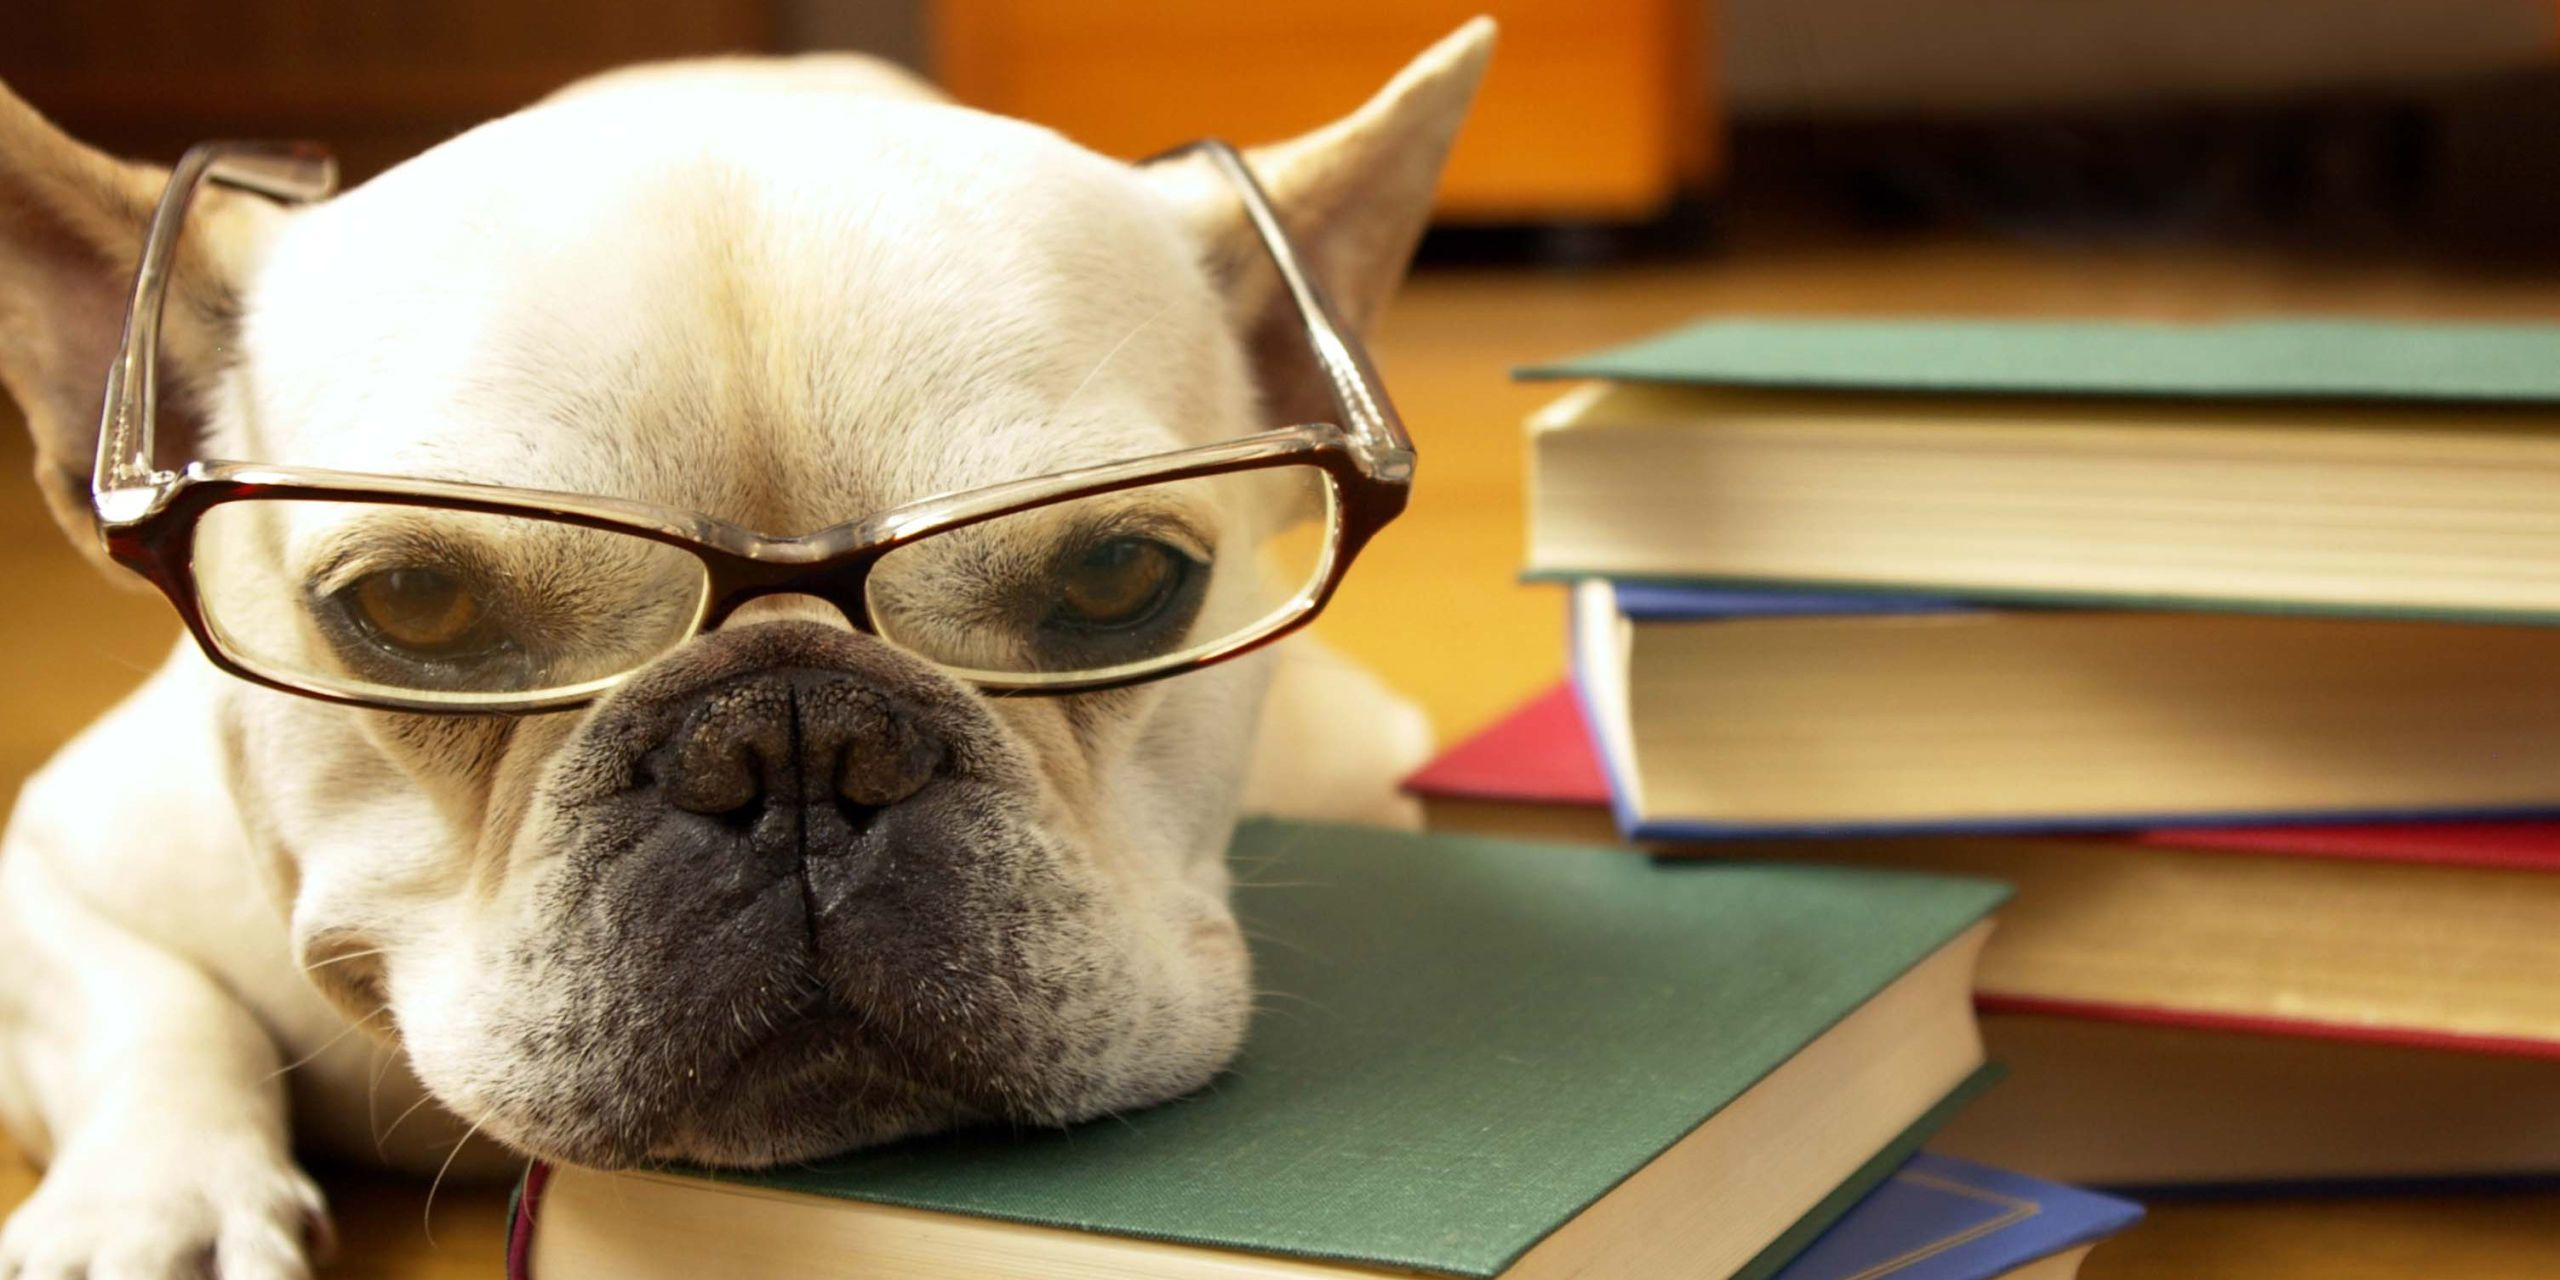 The Top 25 Smartest Dog Breeds